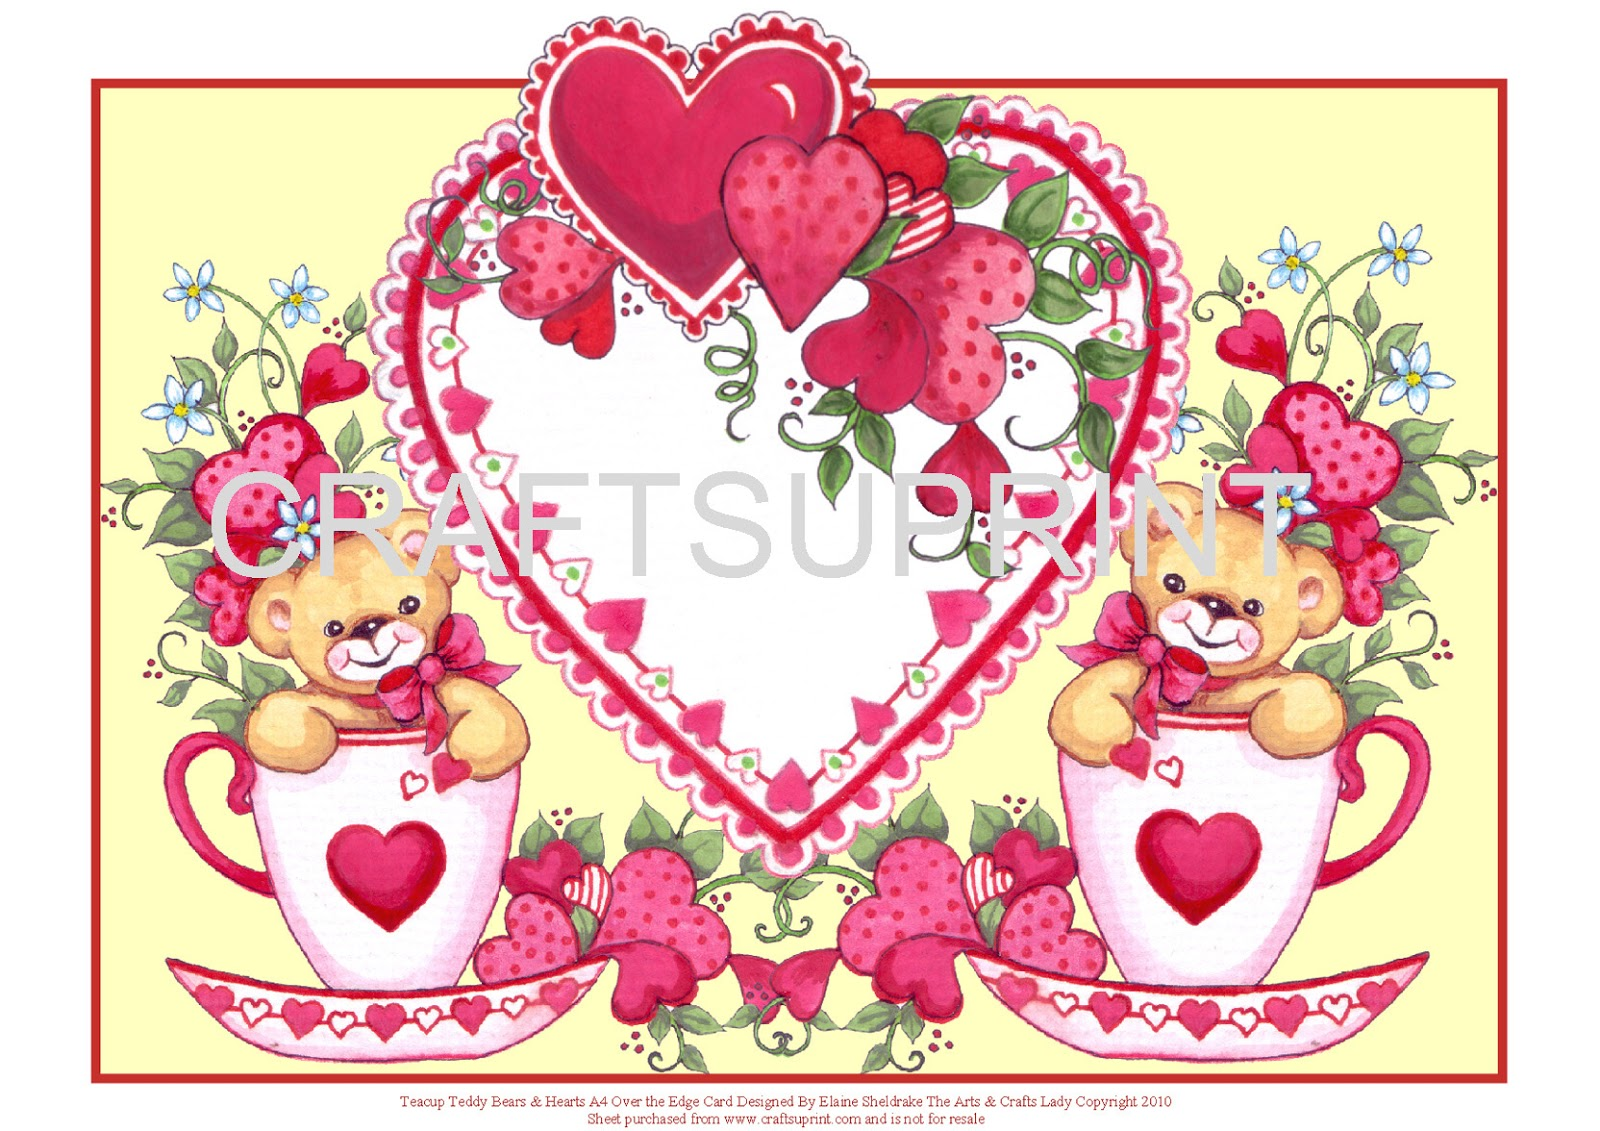 elaine sheldrake the arts and crafts lady valentine u0027s day card